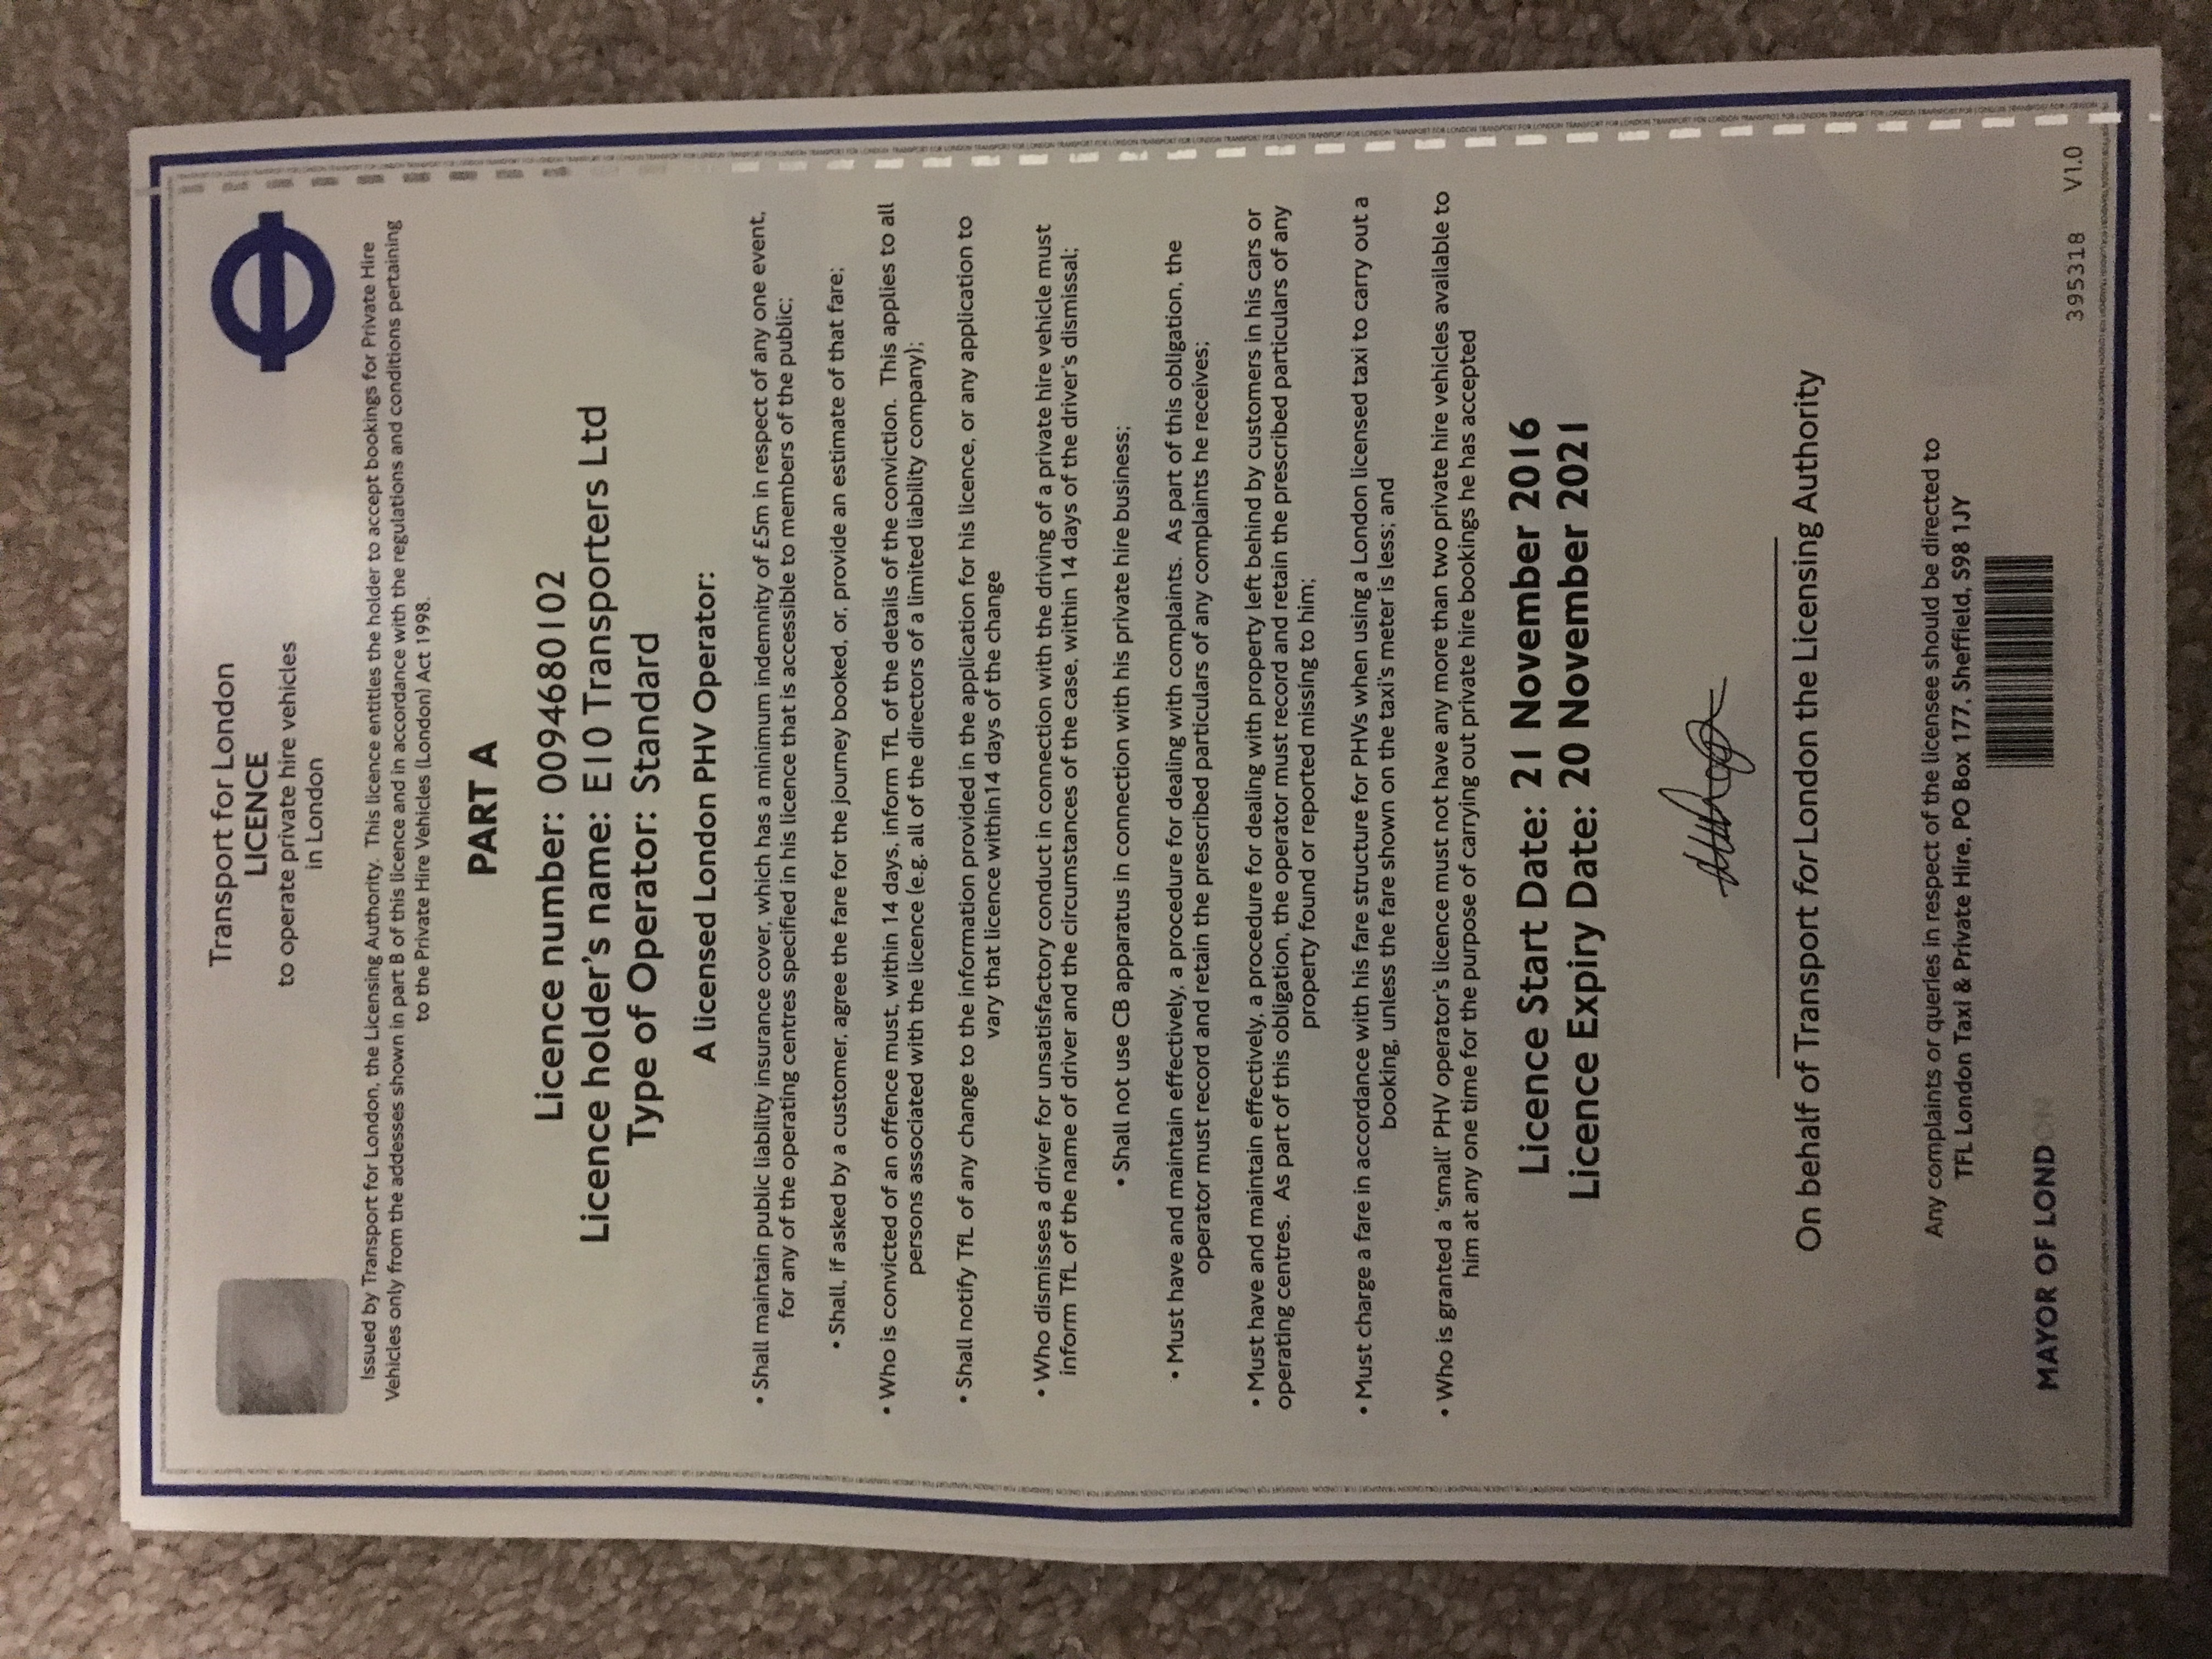 E10 TRANSPORTERS LTD transport licence